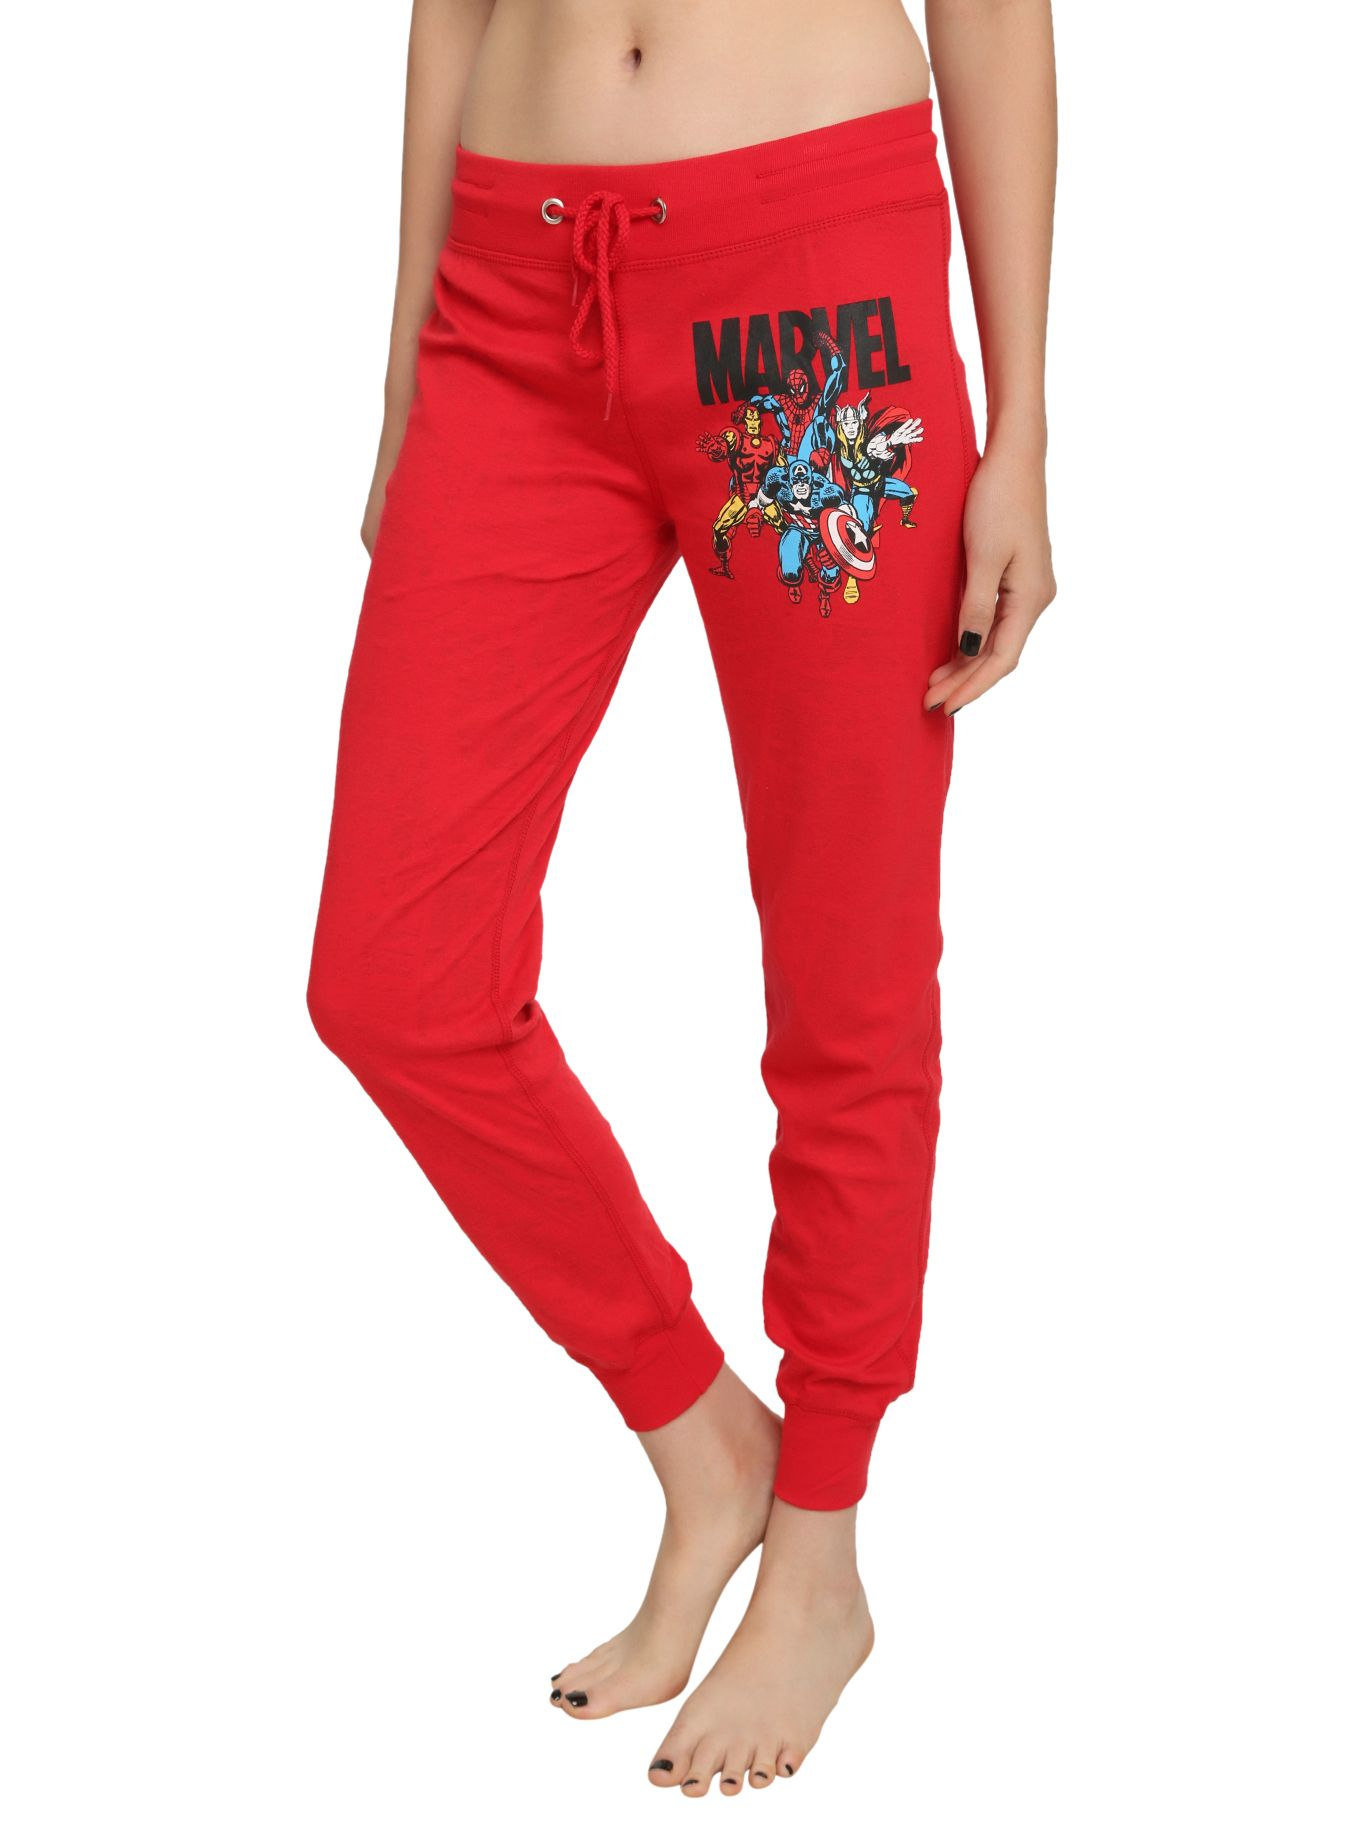 4marvel red reversible girls pajama pnts hot topic